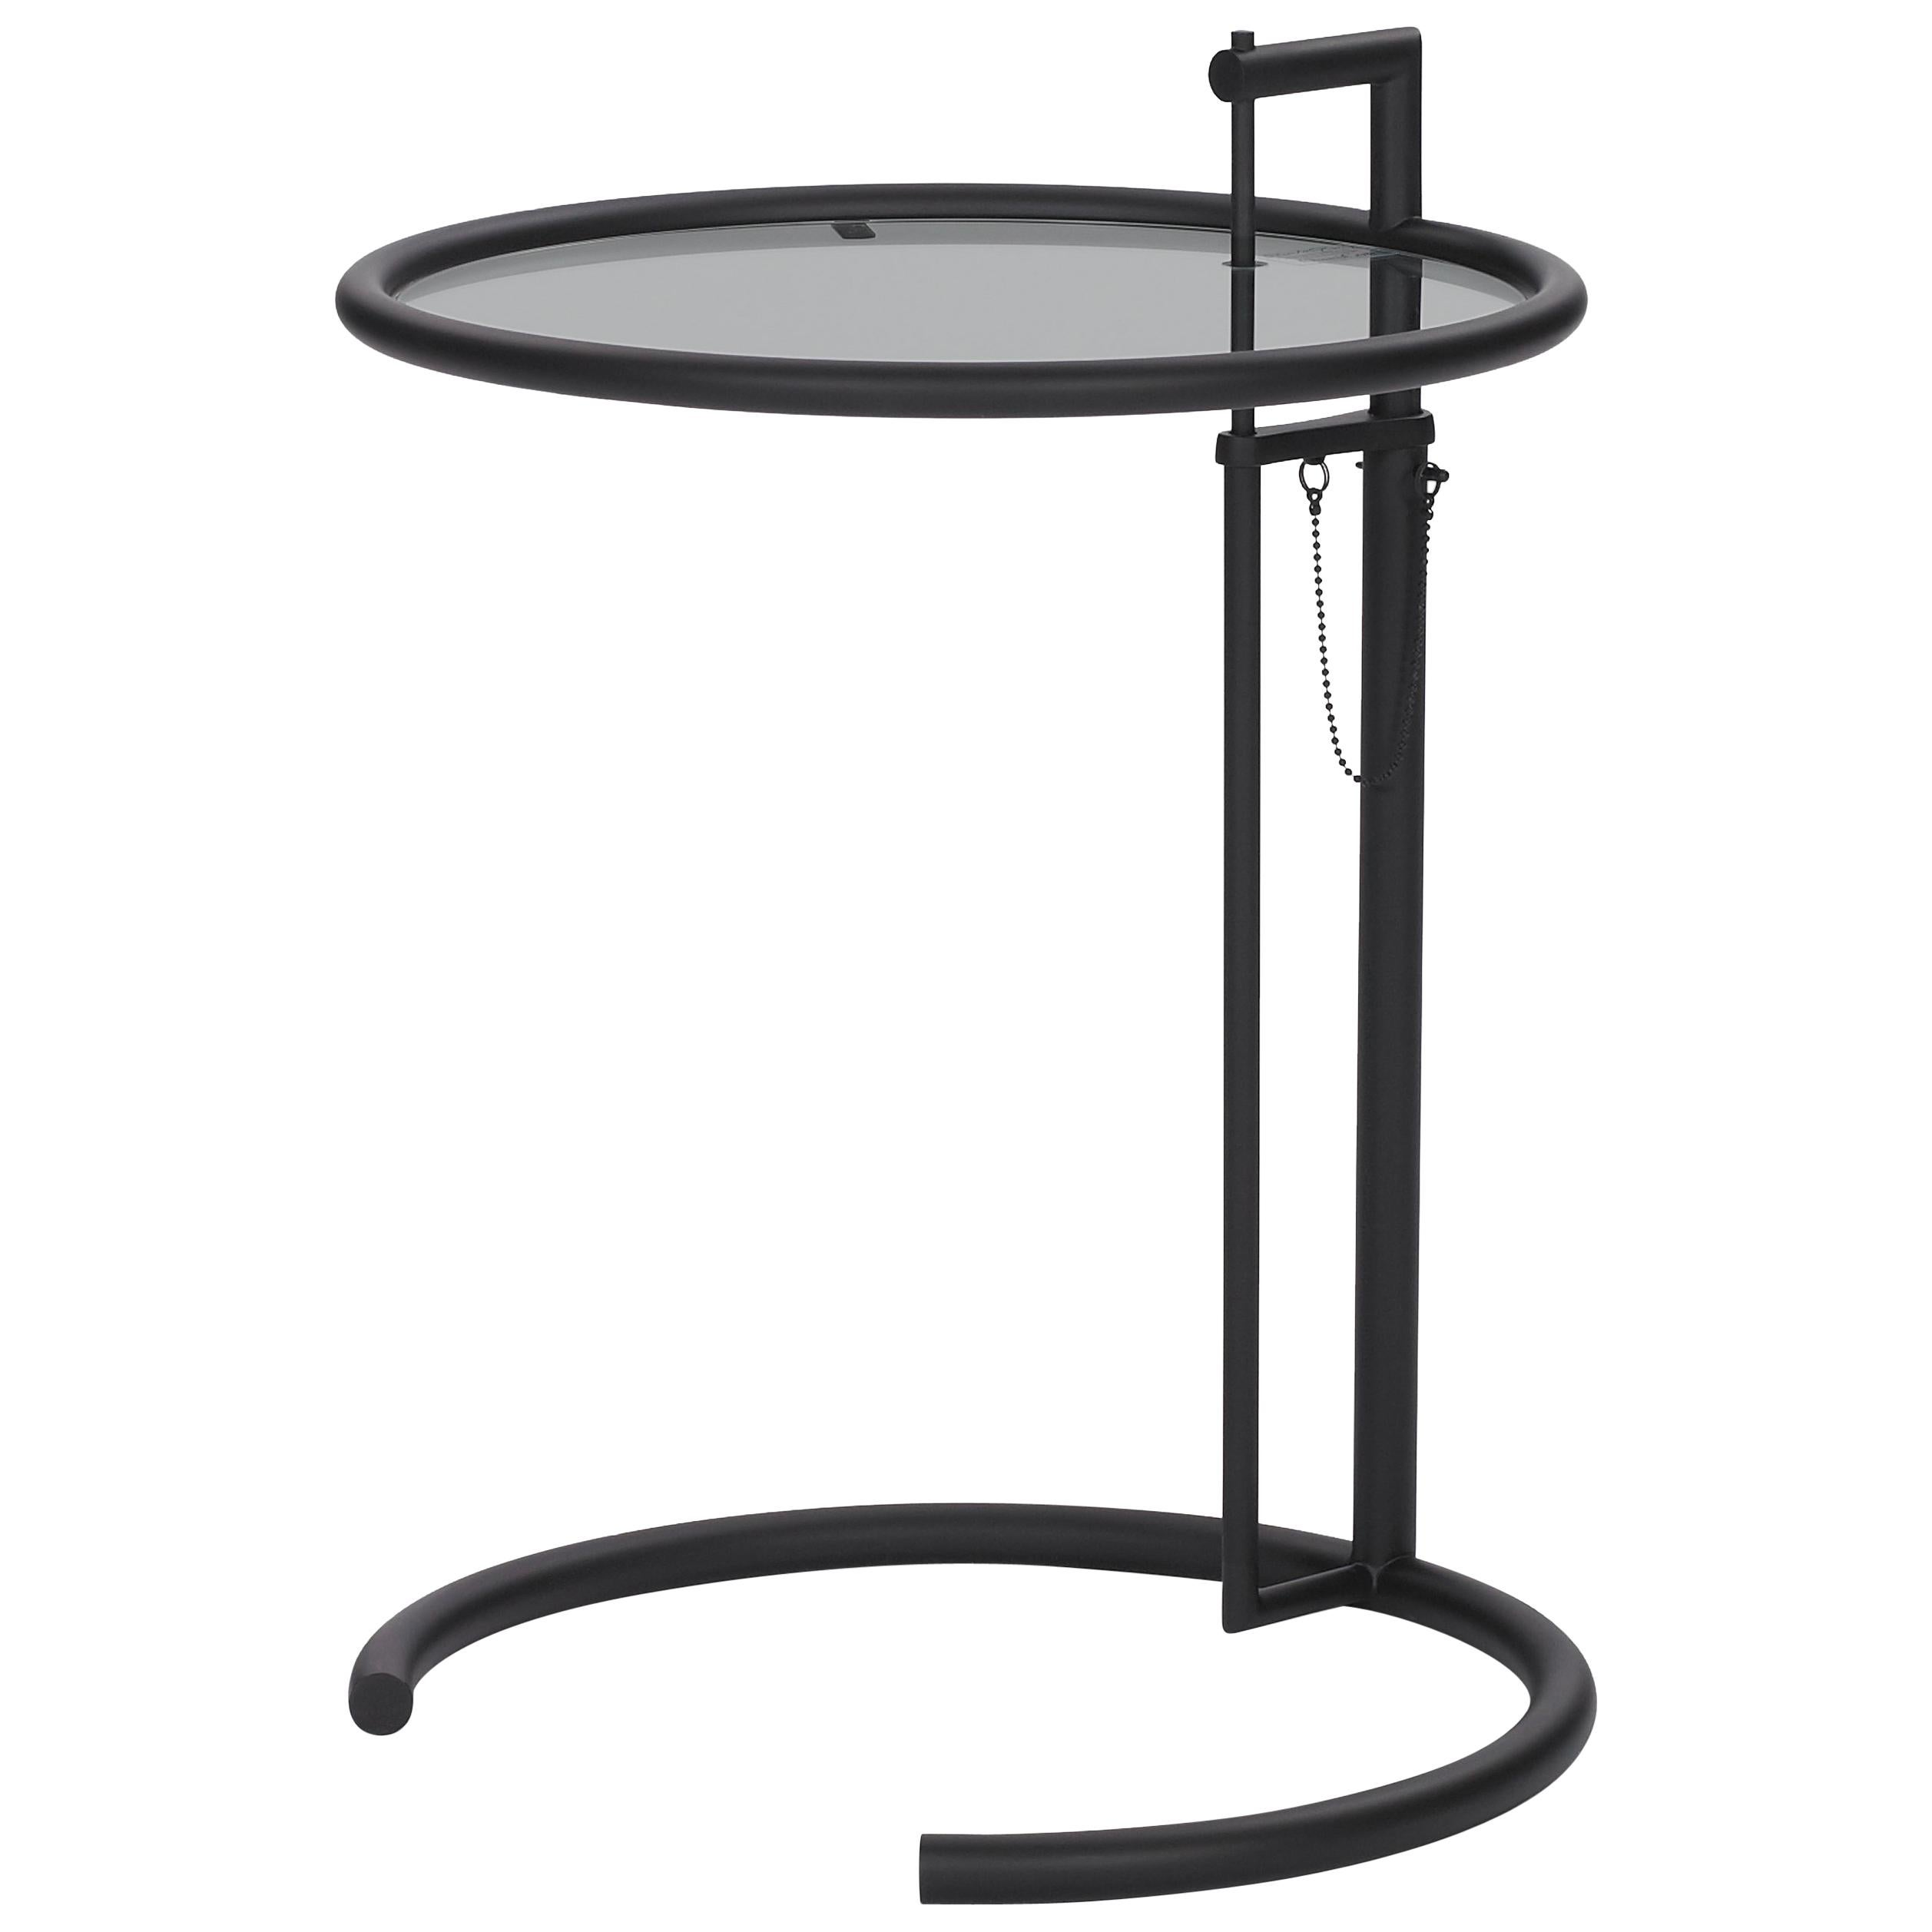 ClassiCon Adjustable Table E 1027 in Black and Smoked Glass by Eileen Gray